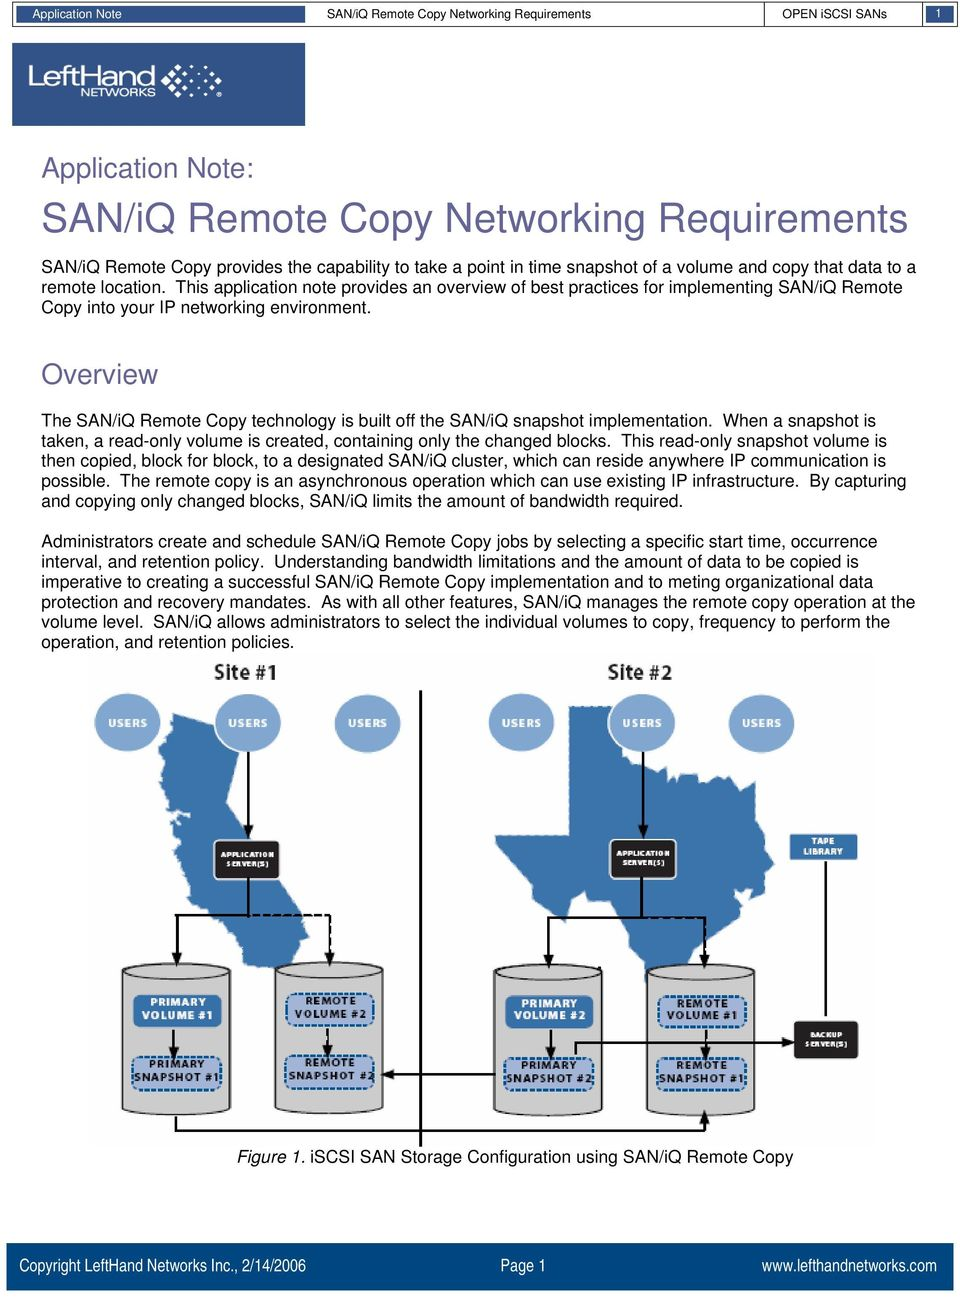 Overview The SAN/iQ Remote Copy technology is built off the SAN/iQ snapshot implementation. When a snapshot is taken, a read-only volume is created, containing only the changed blocks.